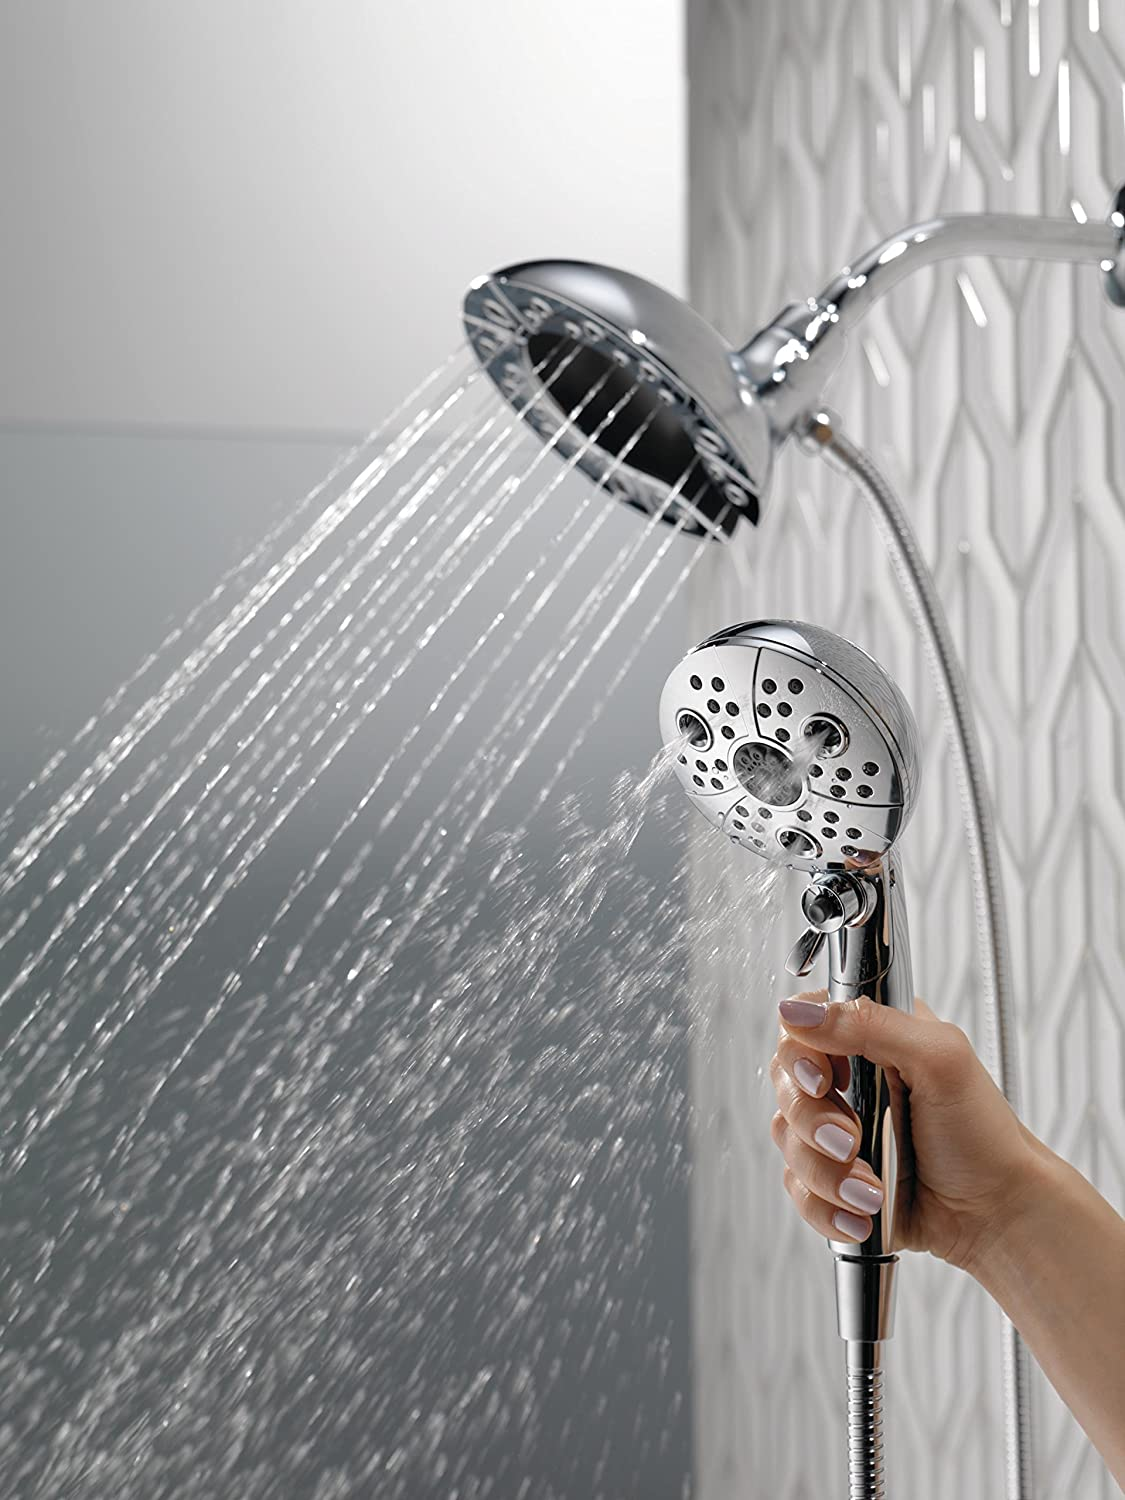 Best Showerhead